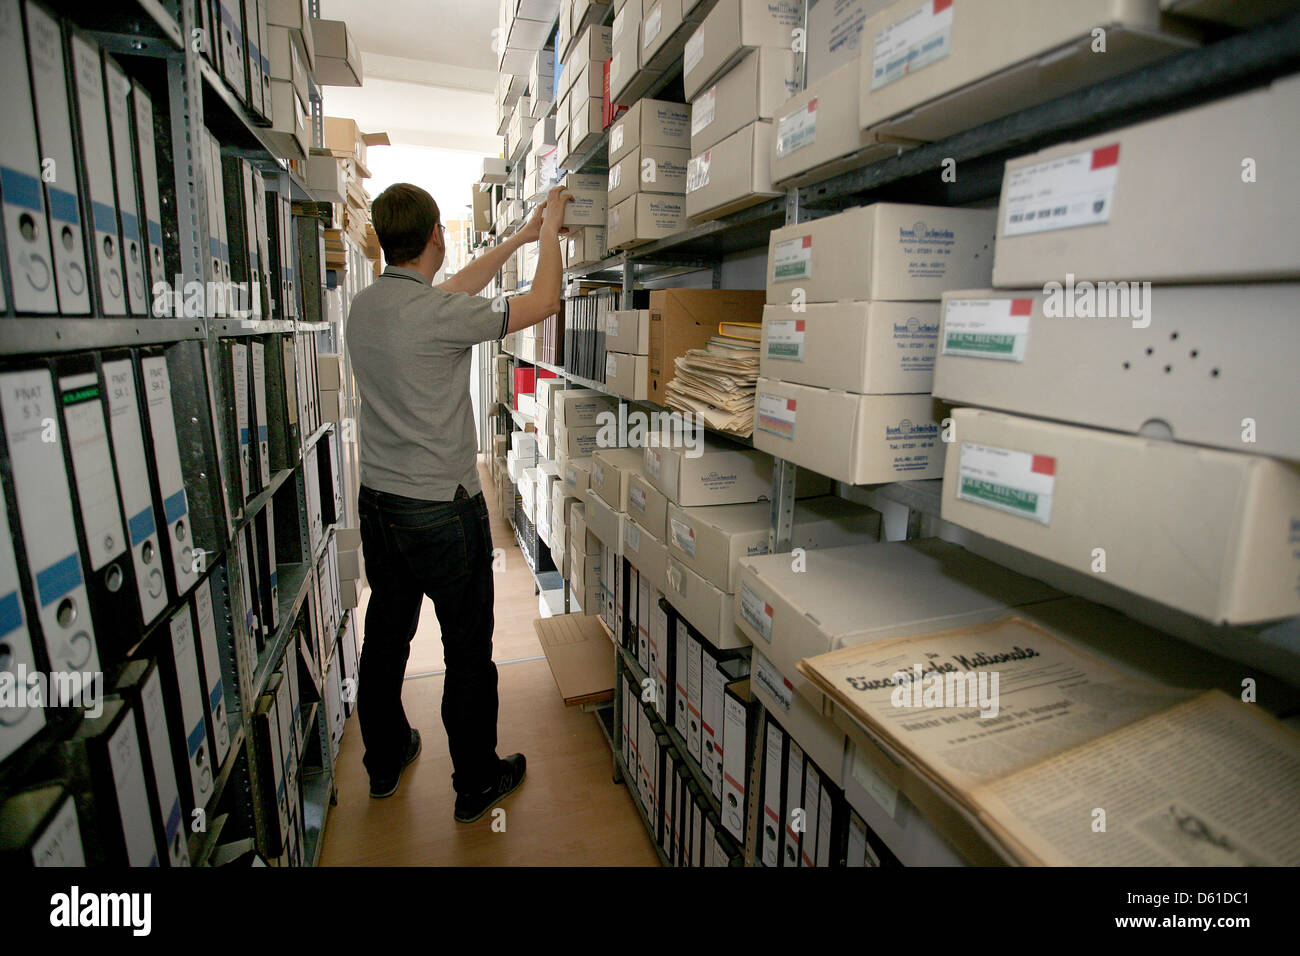 An employee stands between the shelves in the Antifacist Press Archive and Education Center Berlin e.V., apabiz, Stock Photo